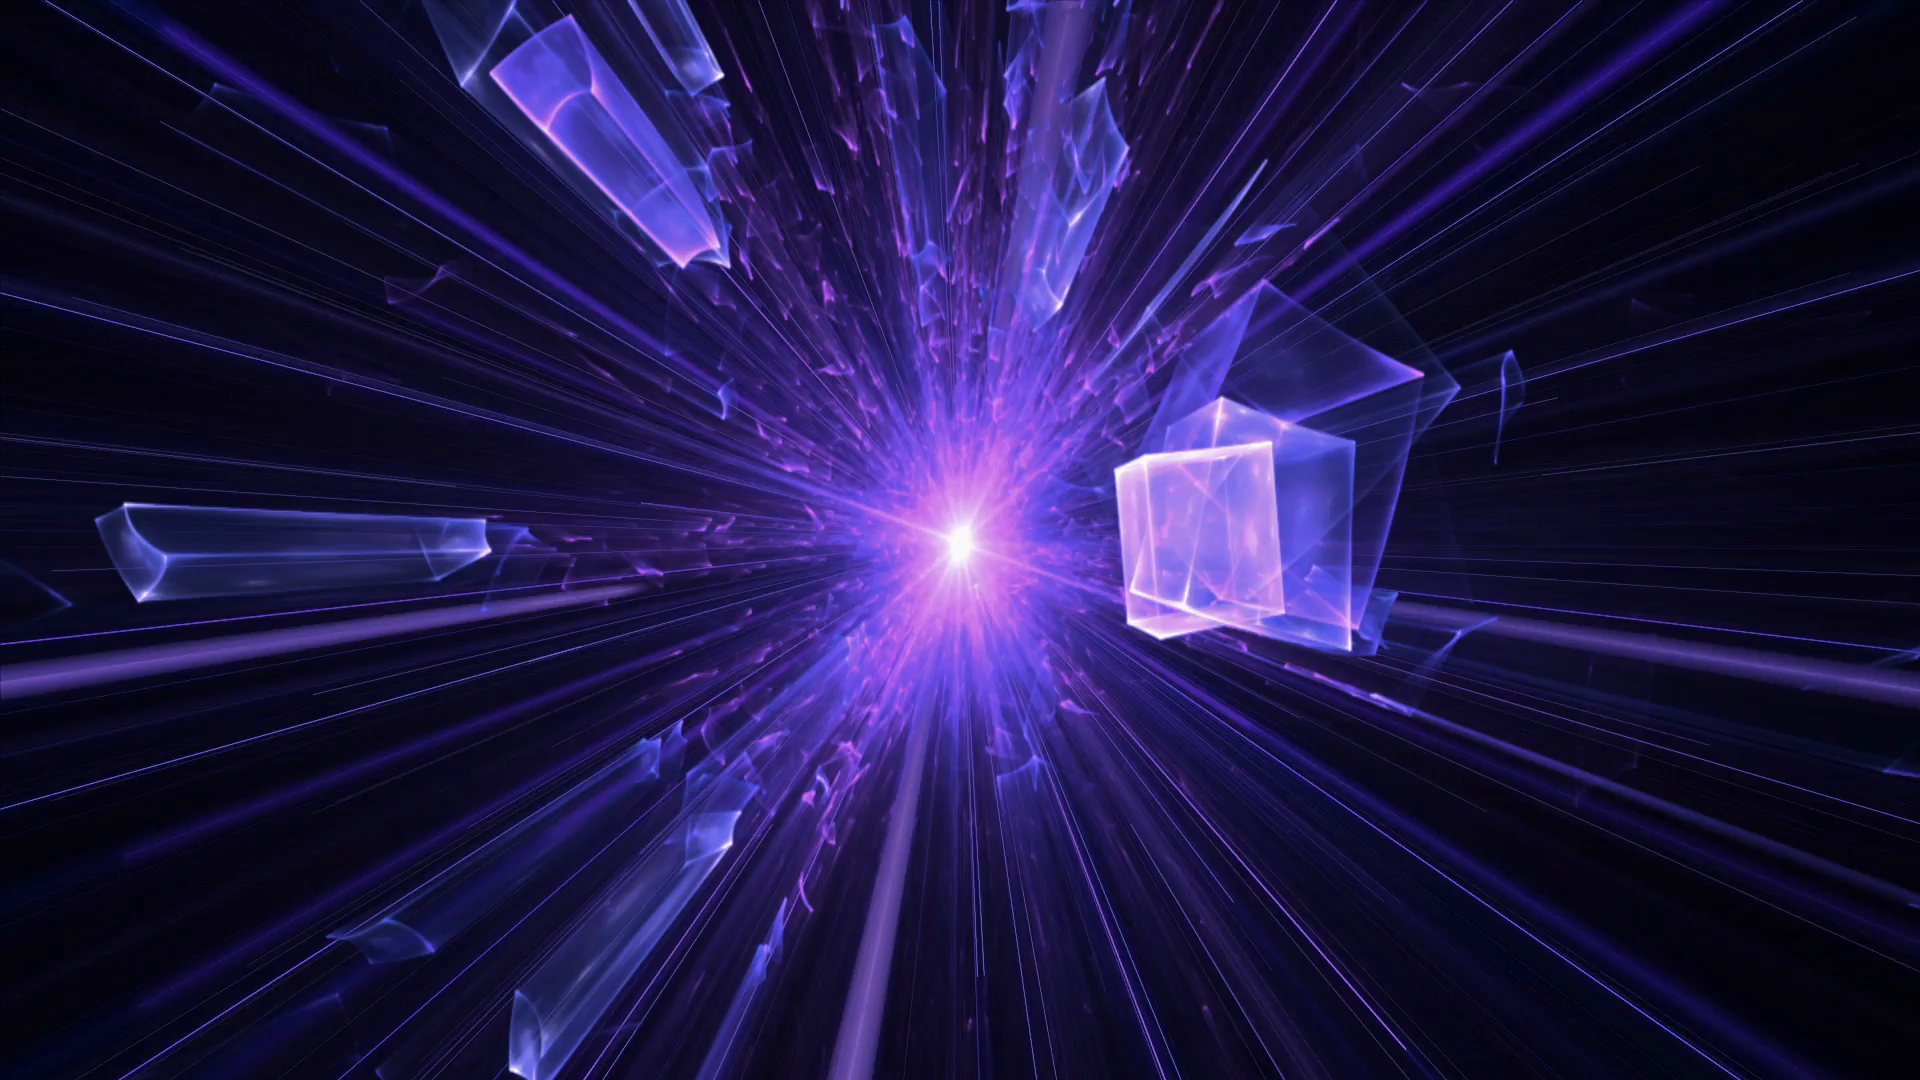 violet and purple blast with rays of light, explosion, violet and ...